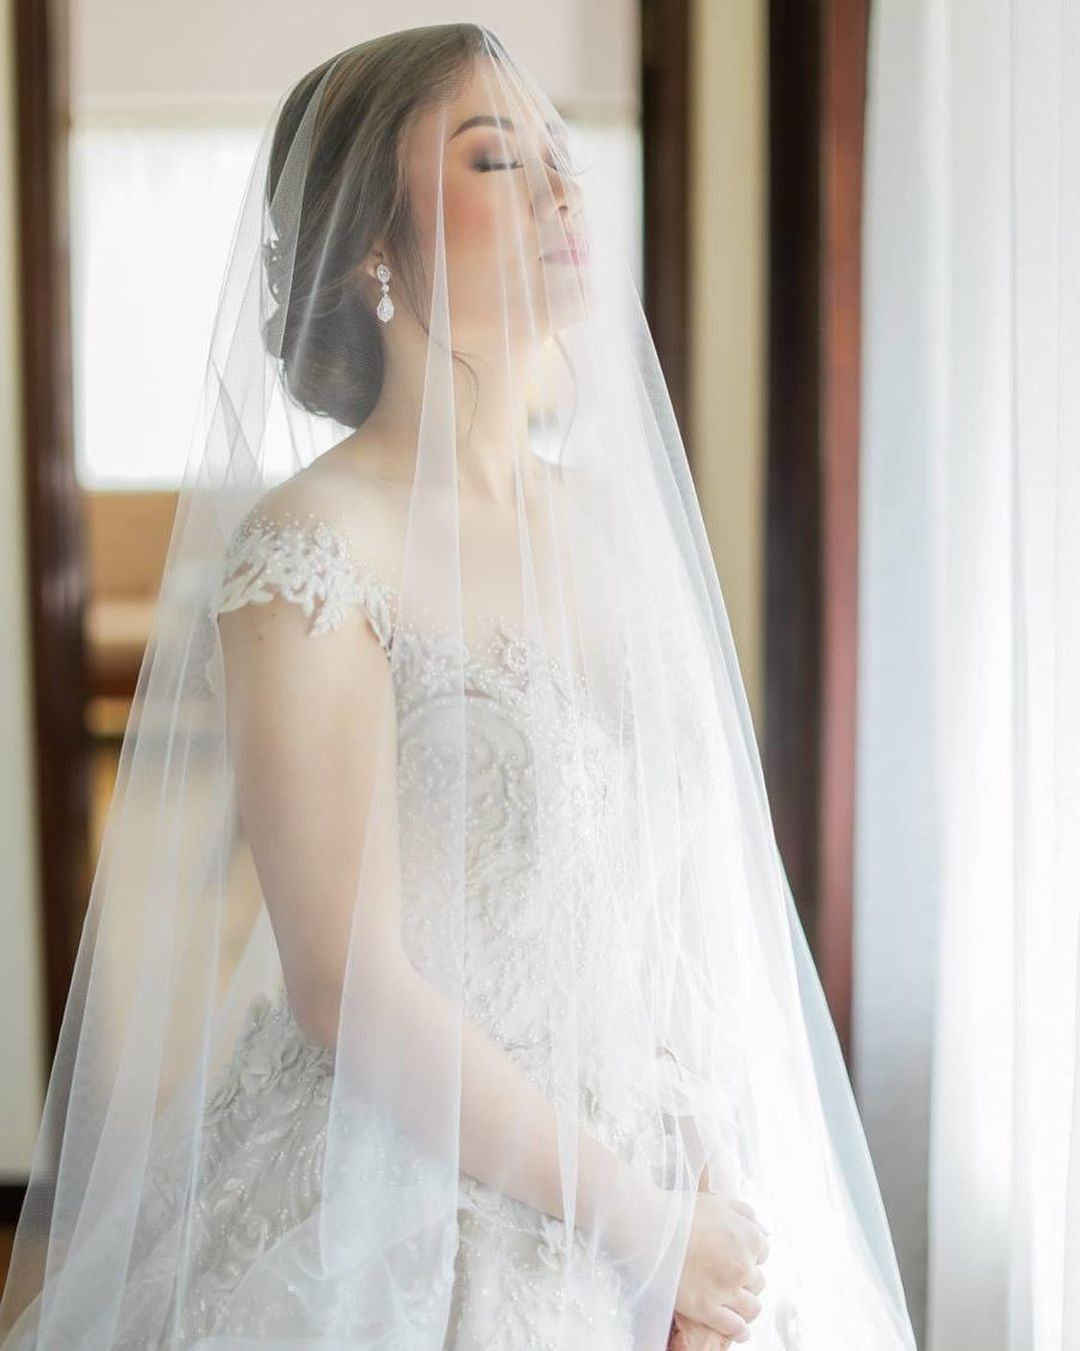 Philippines weddings - white gown